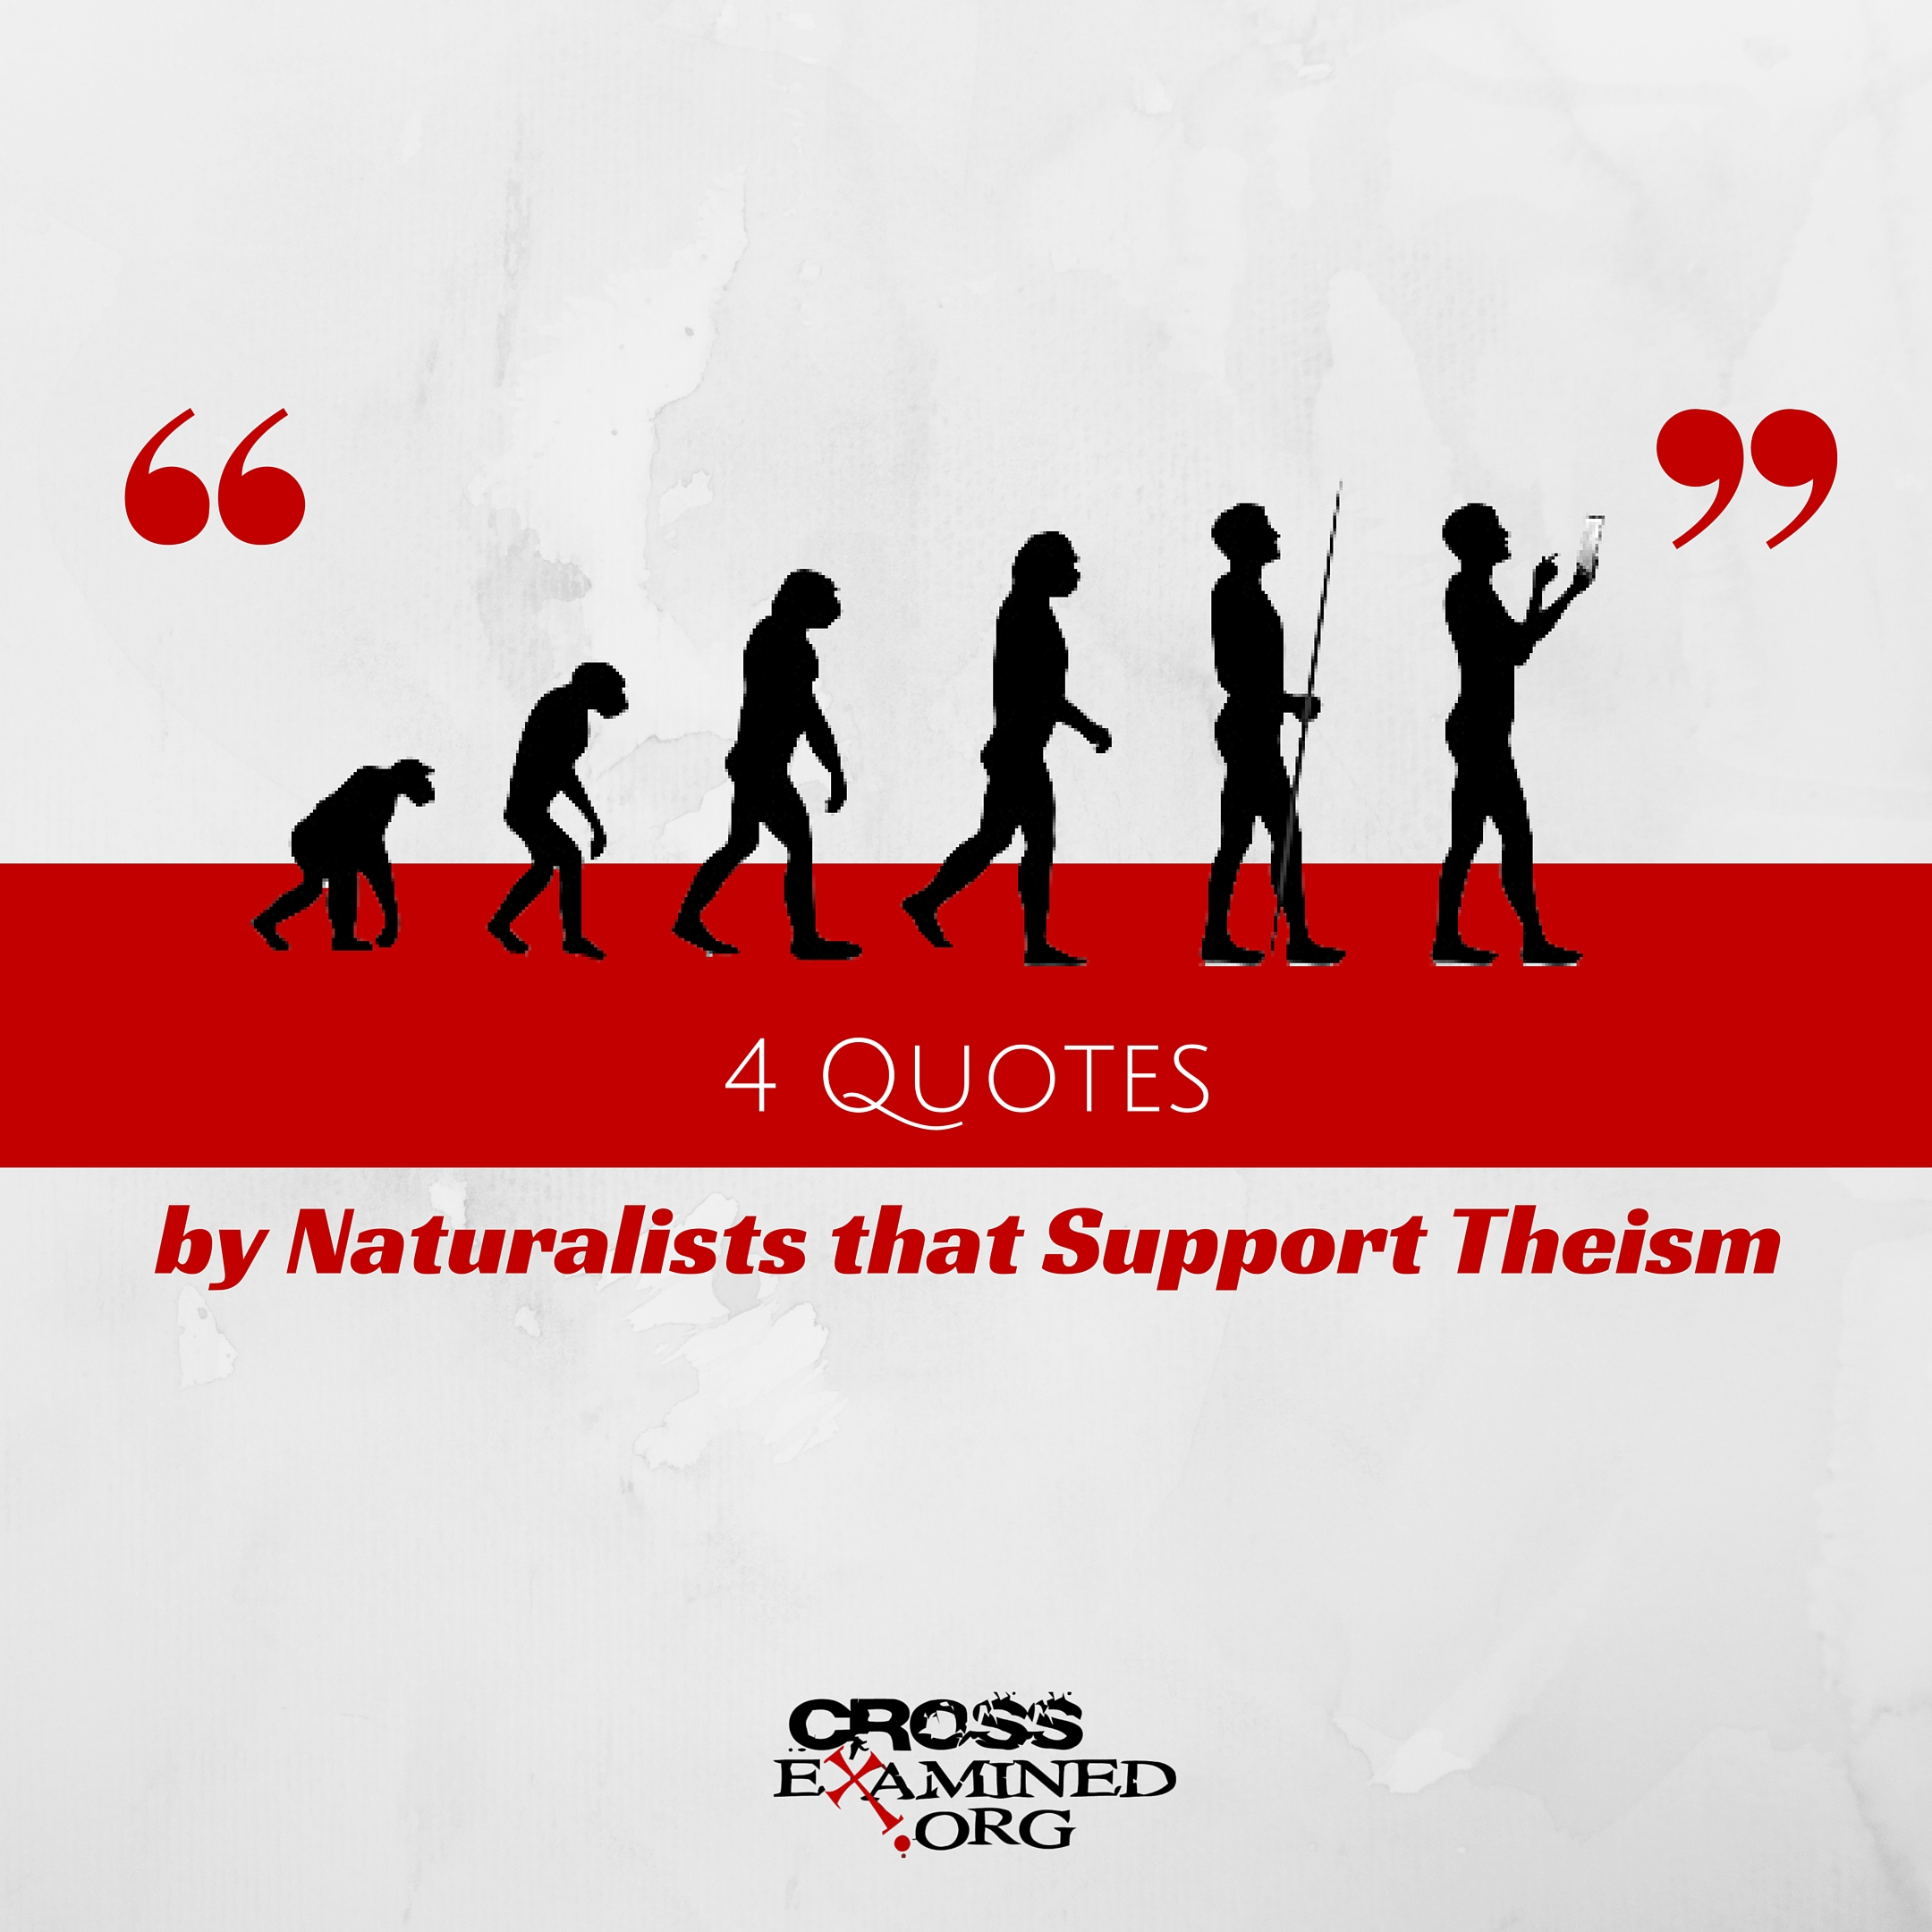 4 Quotes on Natural Selection by Naturalists that Support Theism